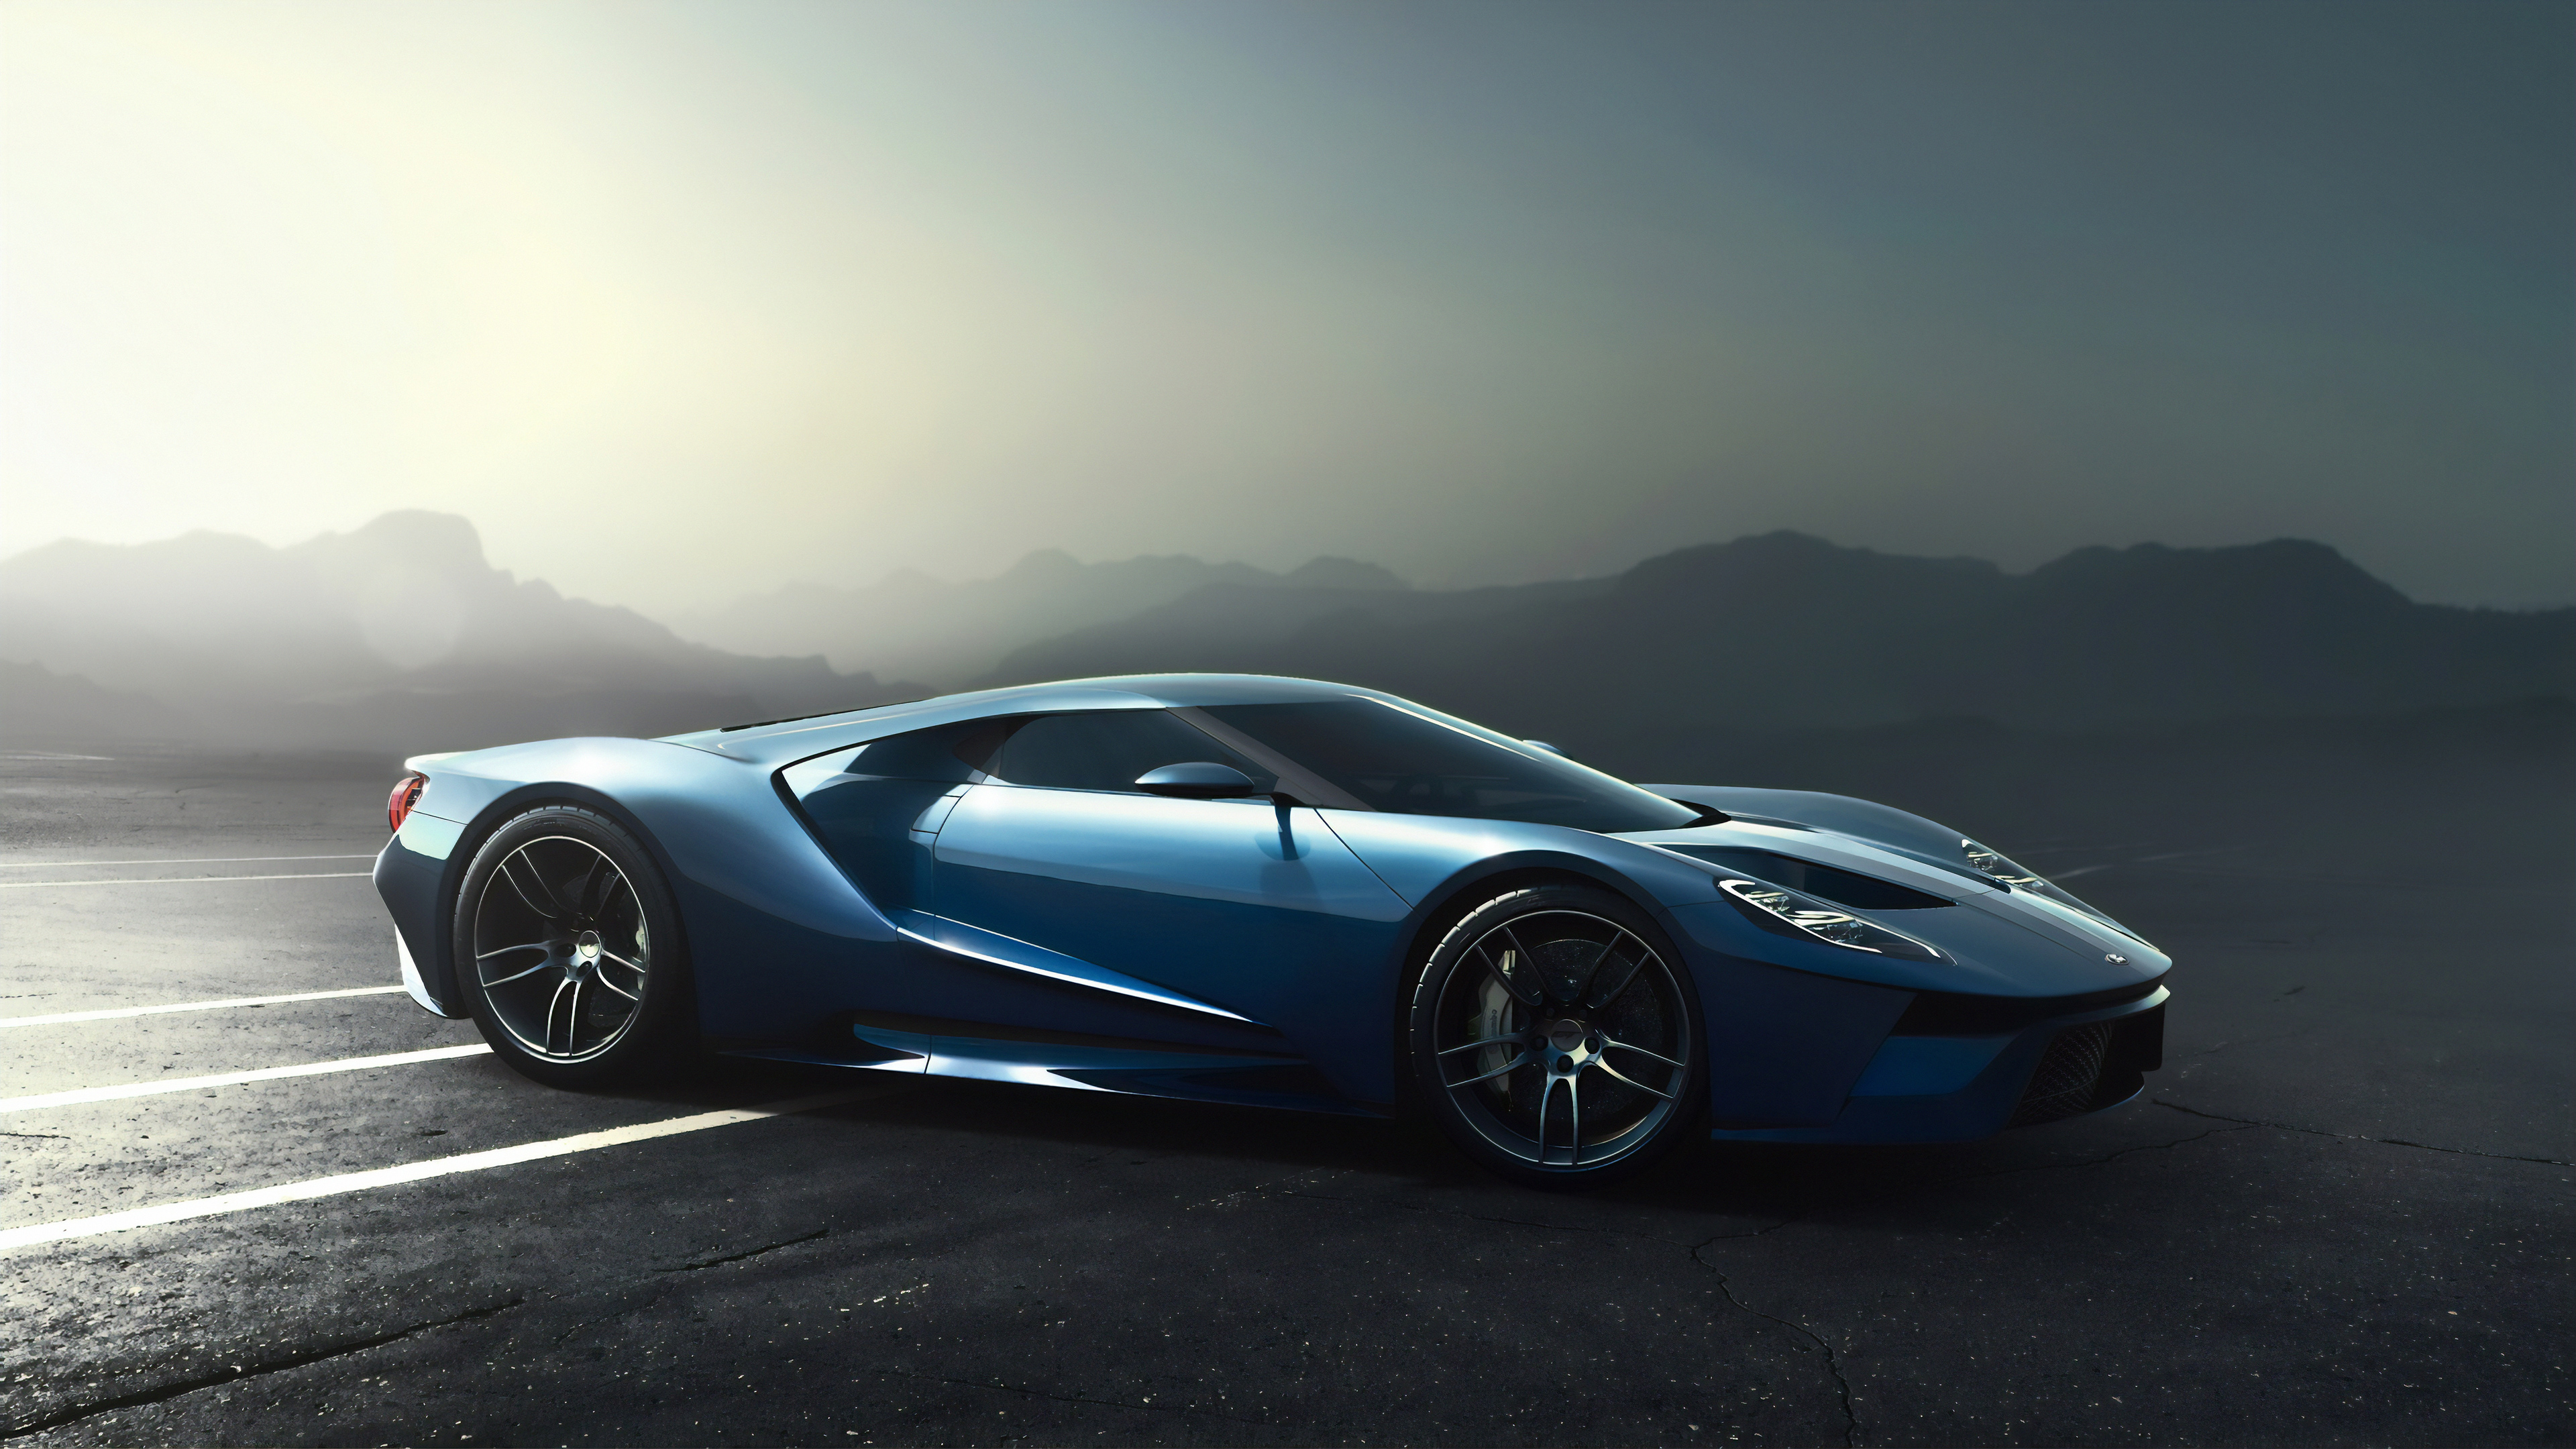 ford gt new 1569188163 - Ford Gt New - hd-wallpapers, ford wallpapers, ford gt wallpapers, behance wallpapers, 4k-wallpapers, 2018 cars wallpapers